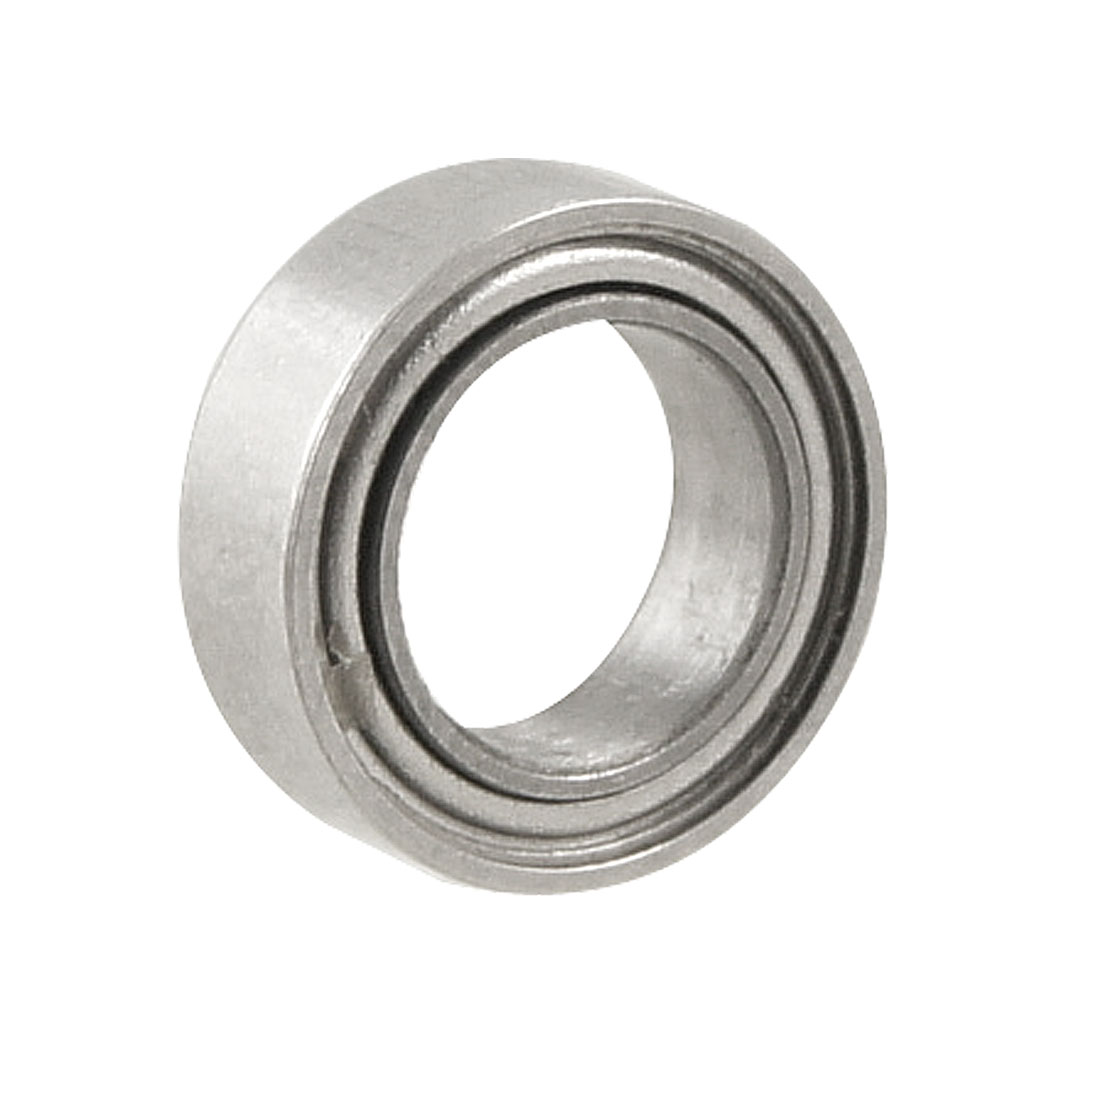 Silver Tone Metal 8mm x 5mm x 2.5mm Shield Ball Bearing